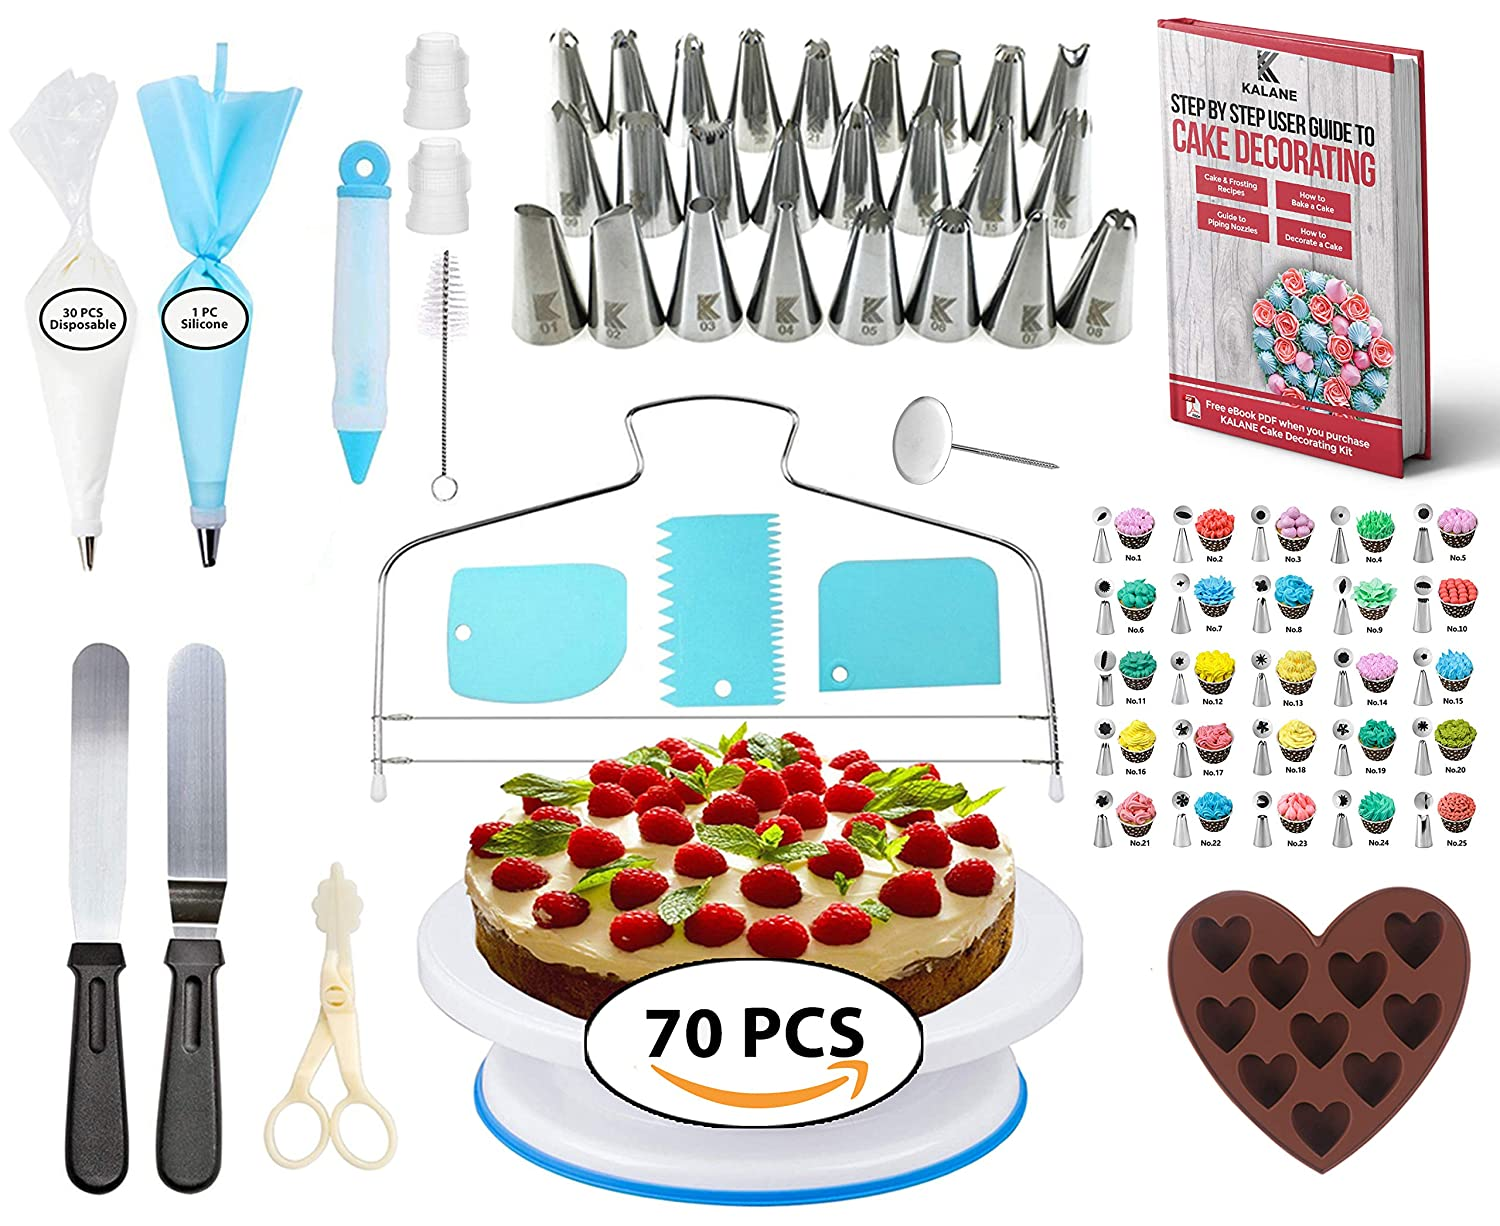 Cake Decorating Equipment Turntable (70 PCS) 25 Numbered Easy to use Icing Tips with Pattern Chart and eBook, Straight and Angled Spatula,3 Cake Scrapers KALANE